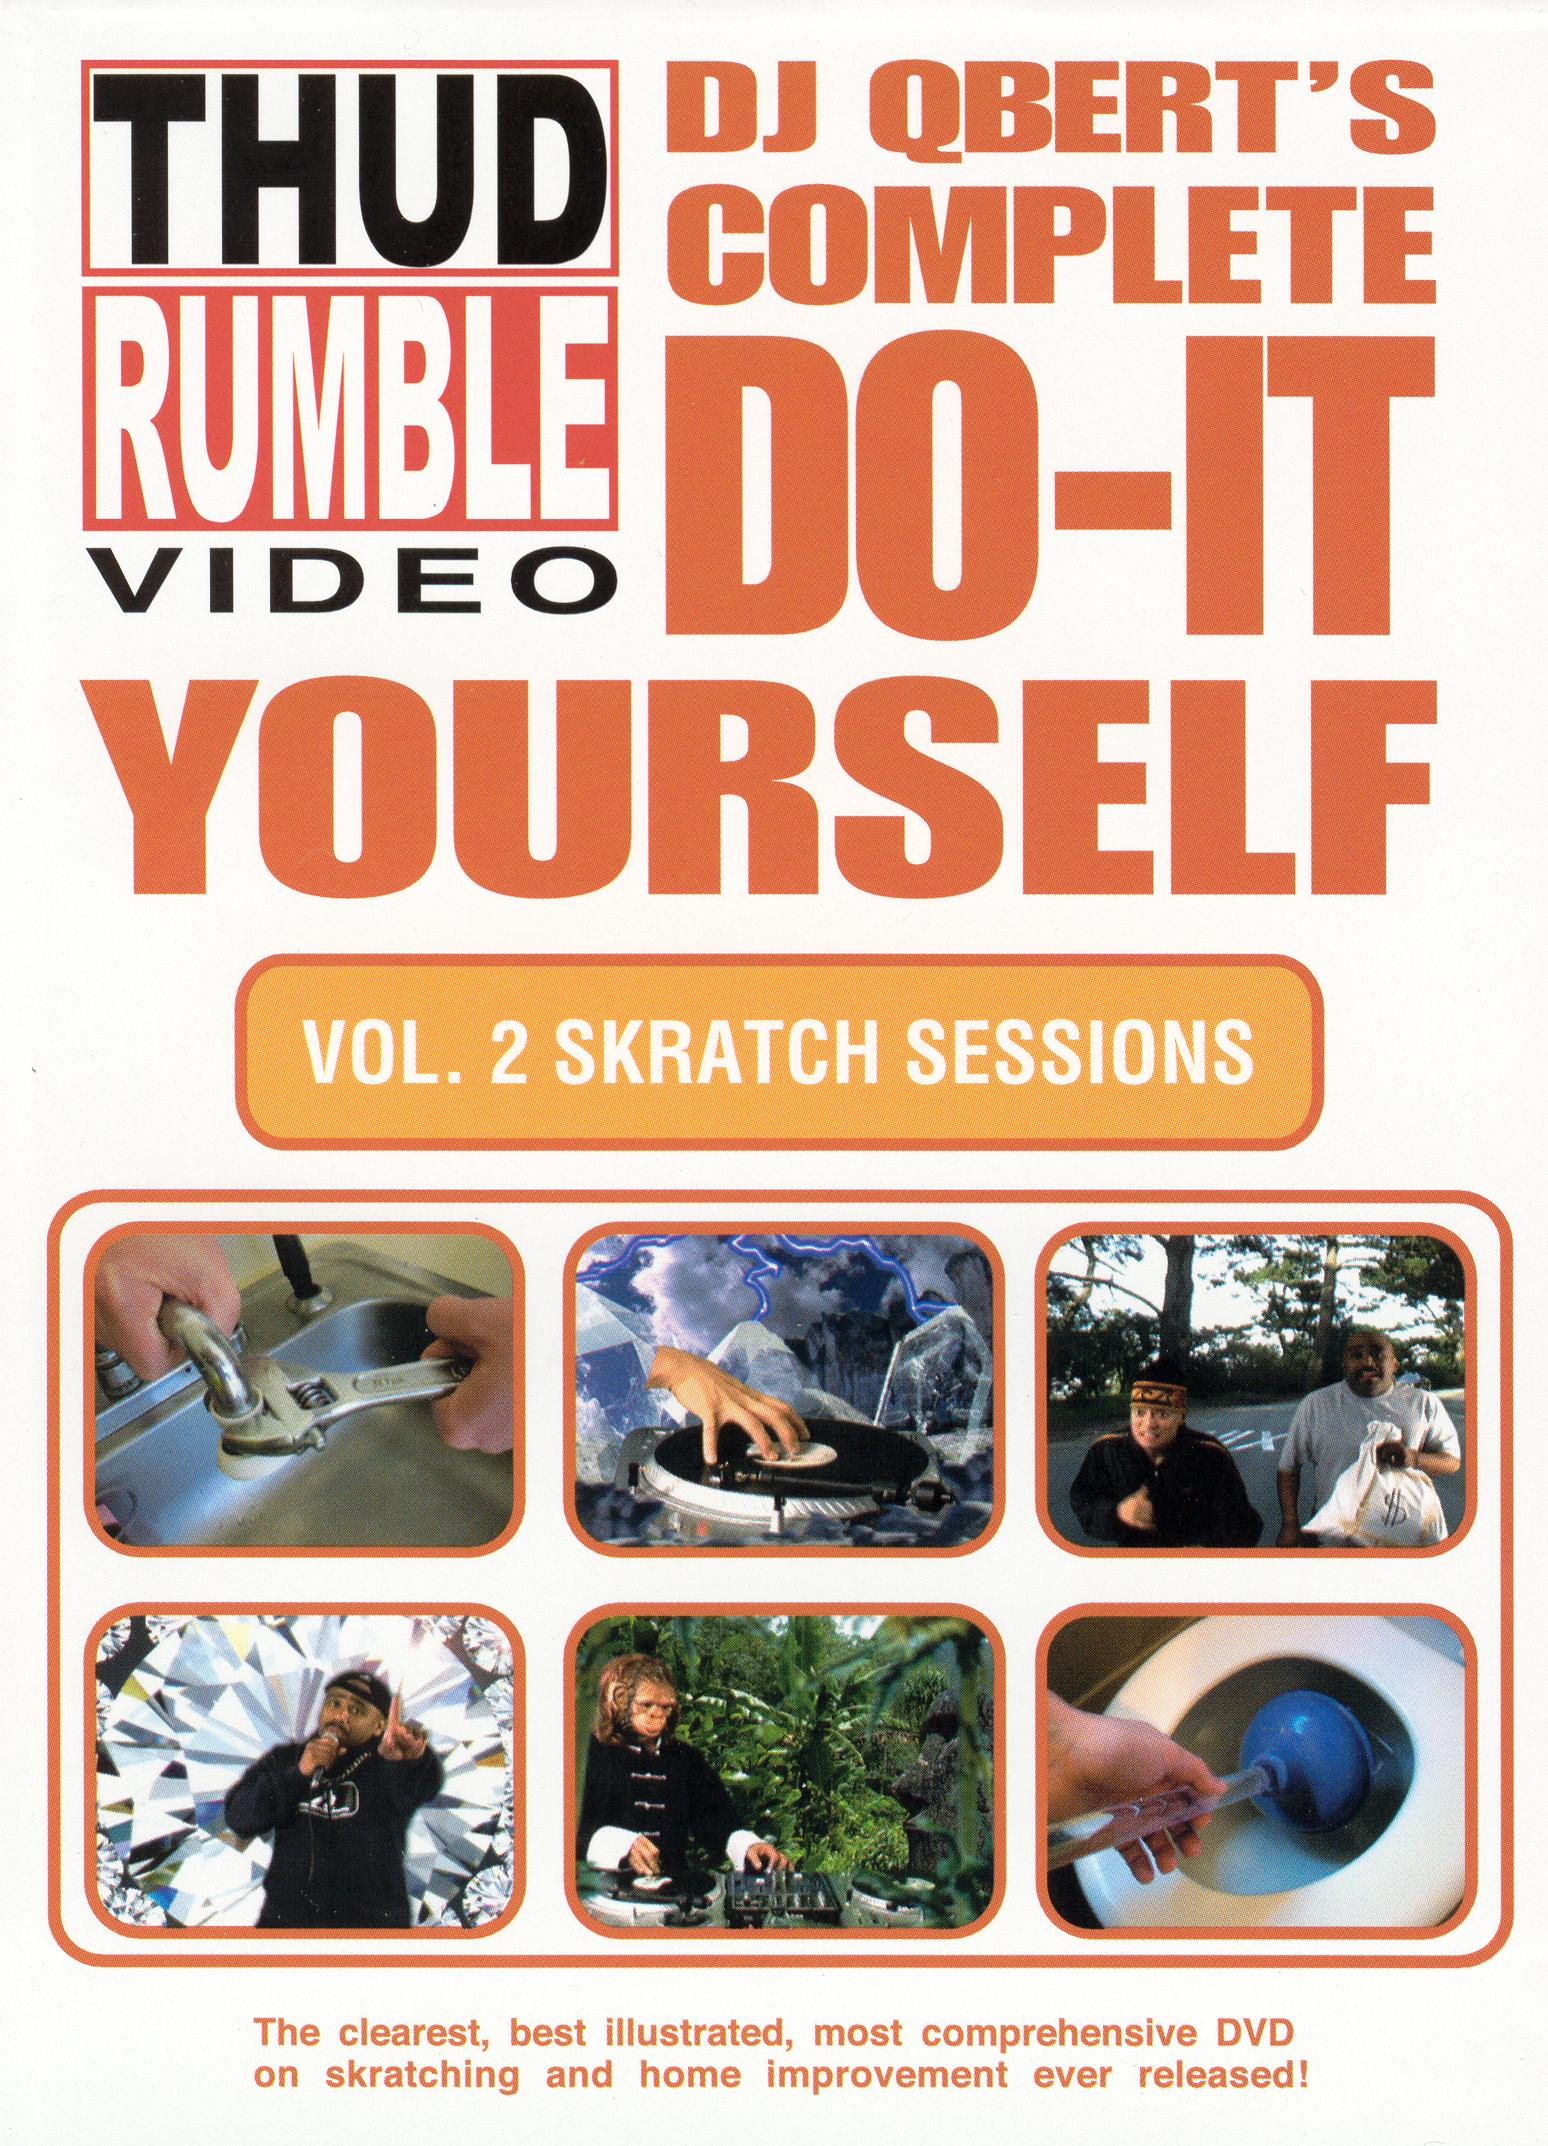 DJ Qbert: Complete Do-It-Yourself, Vol. 2 - Skratch Sessions